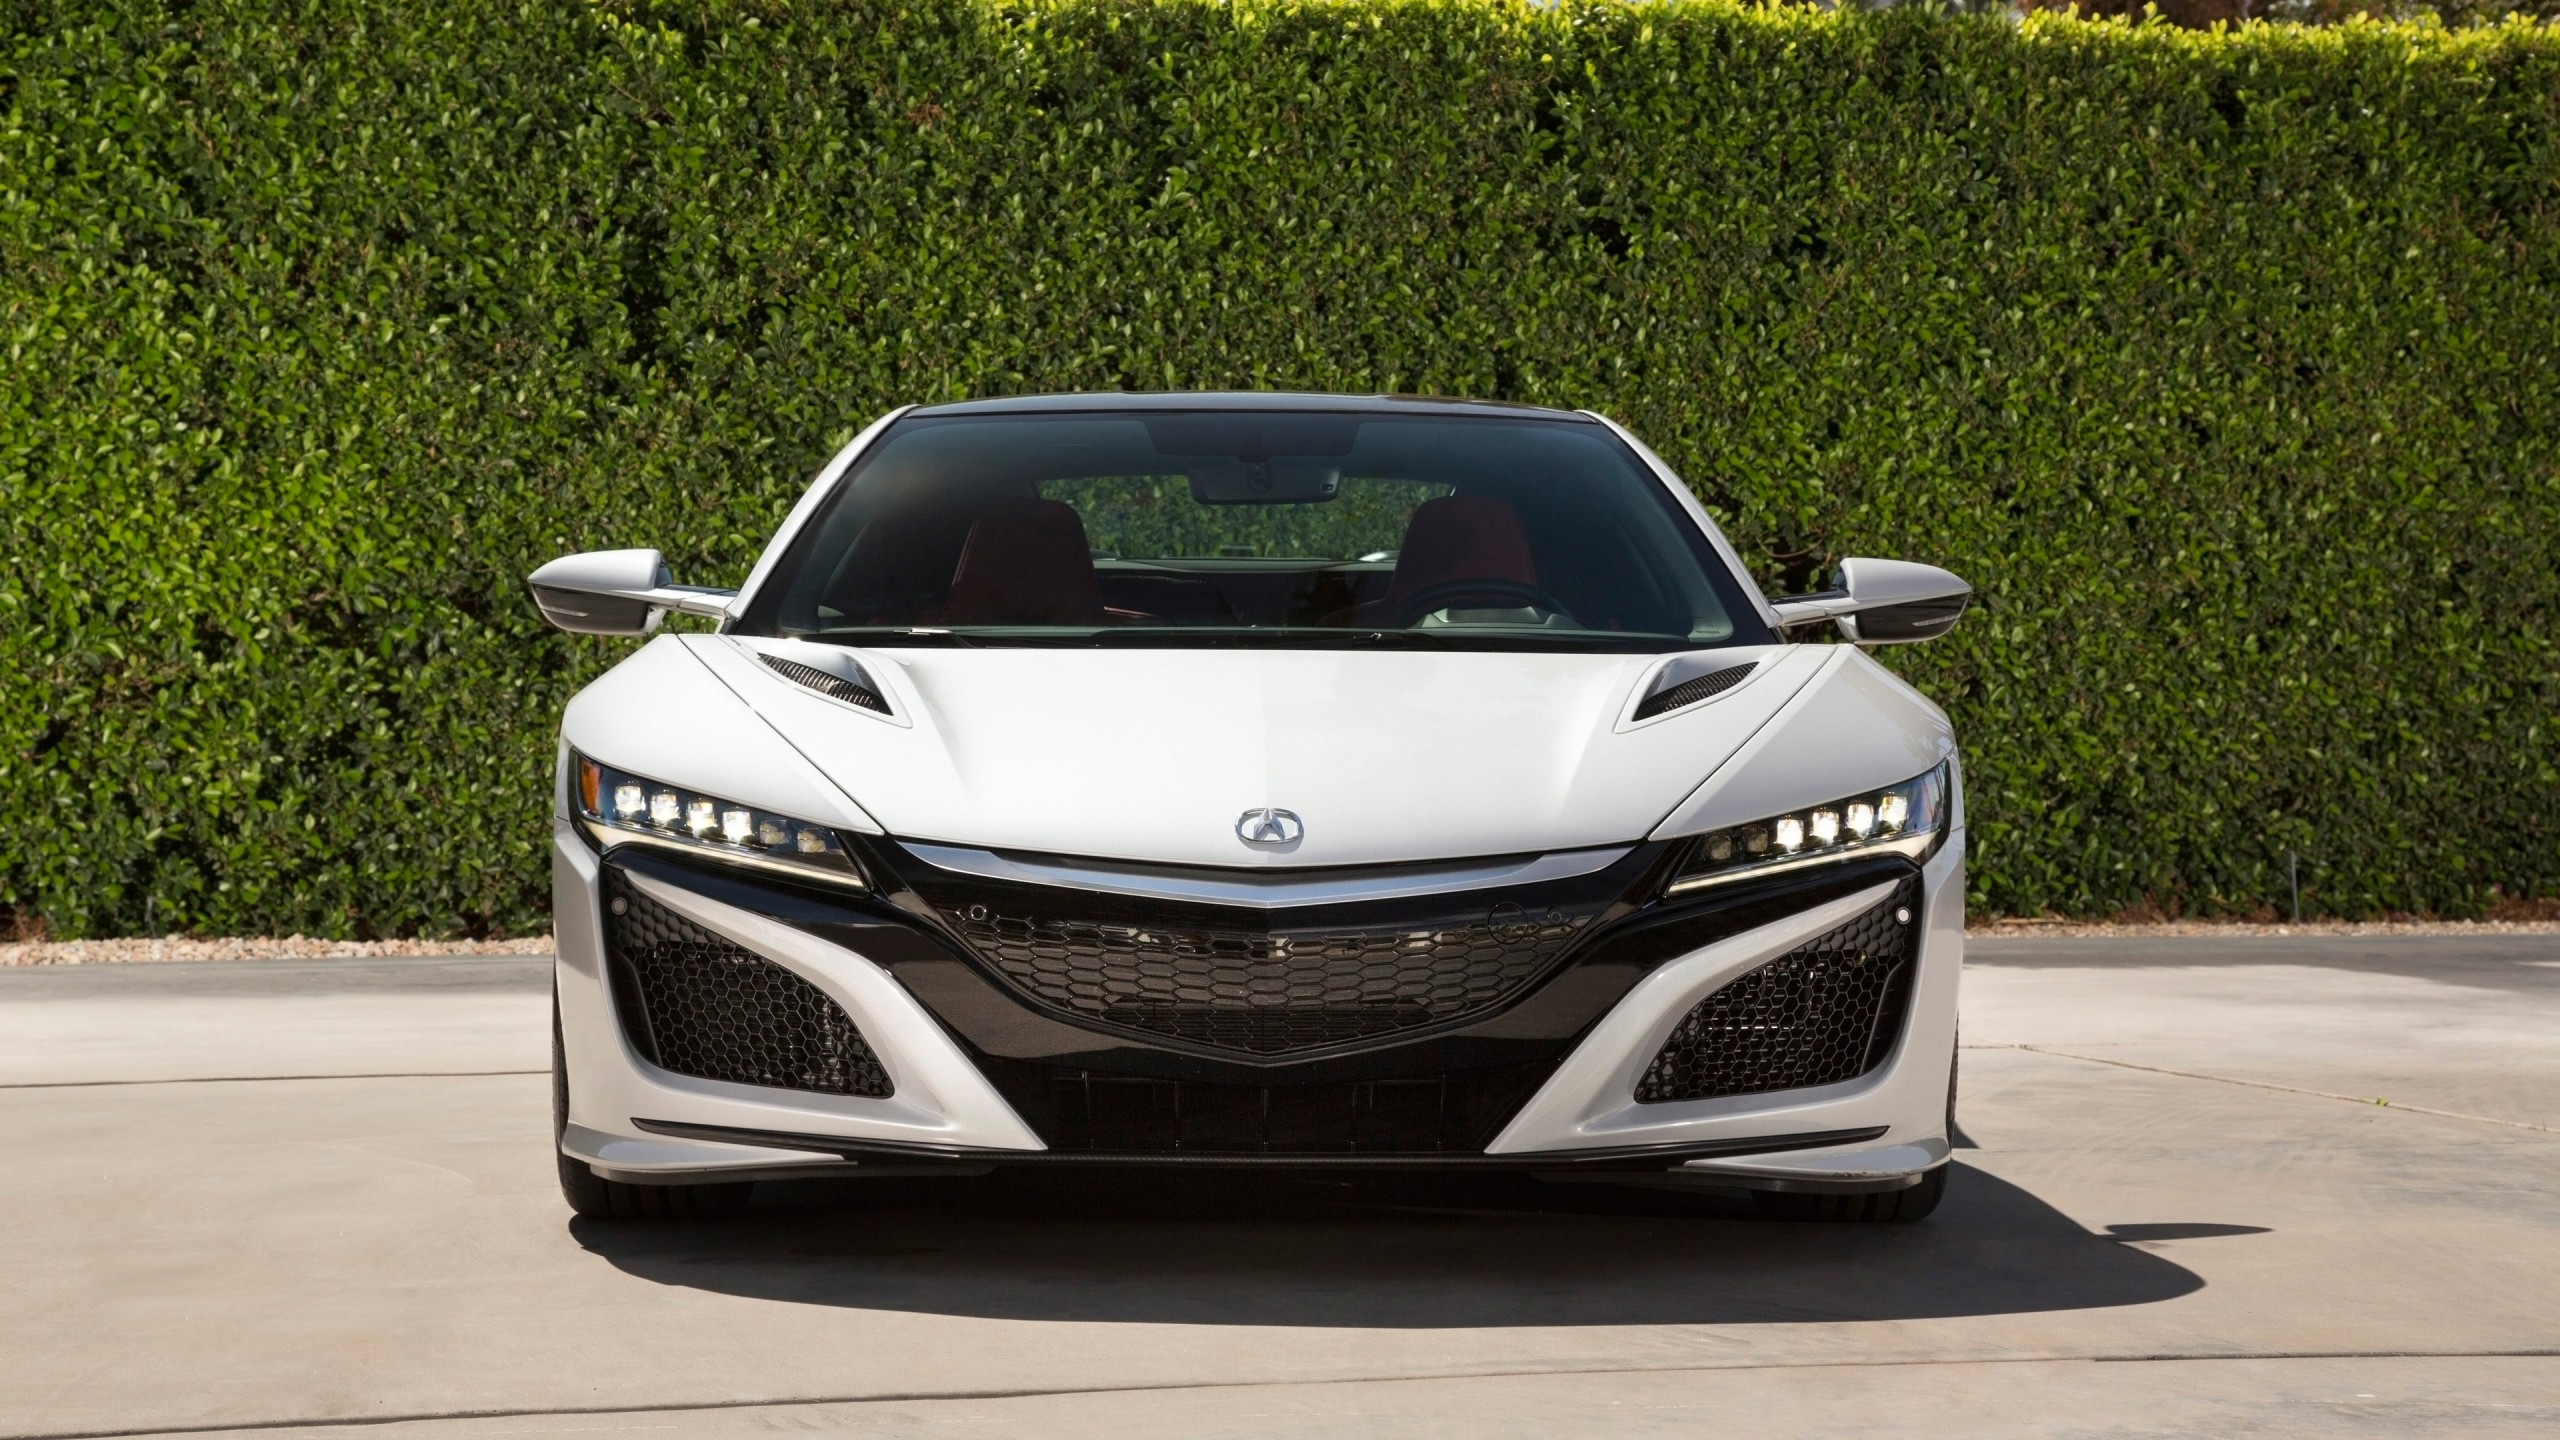 2017 Acura NSX White Wallpaper | HD Car Wallpapers